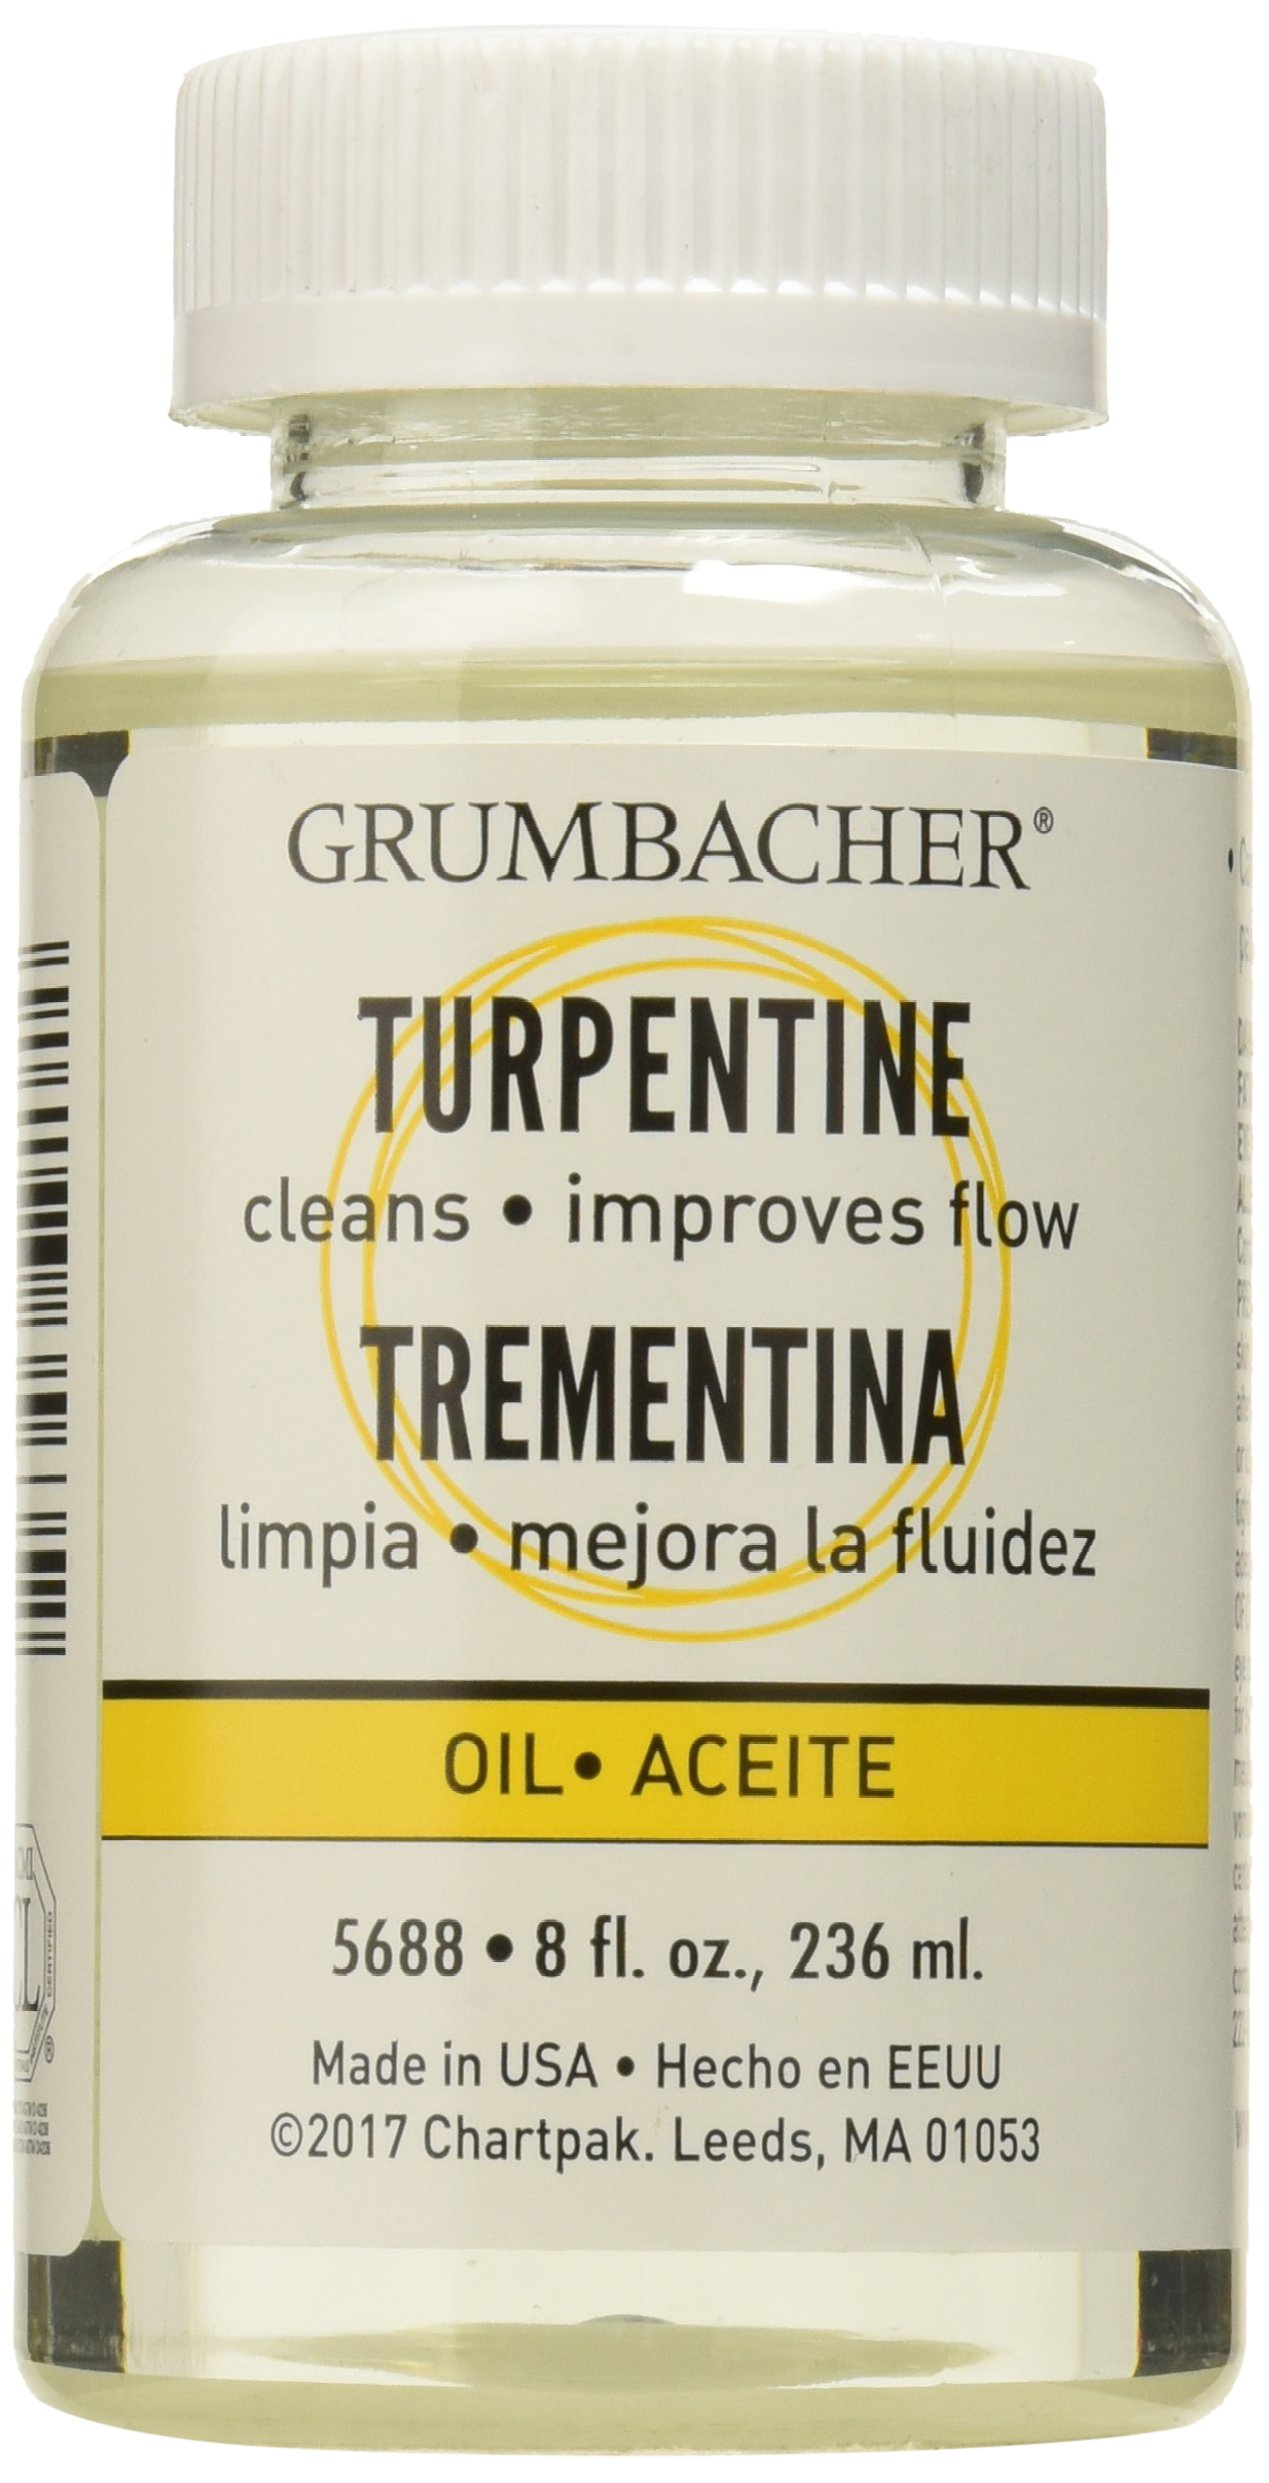 Grumbacher Turpentine, 8 Oz. Can, 5688